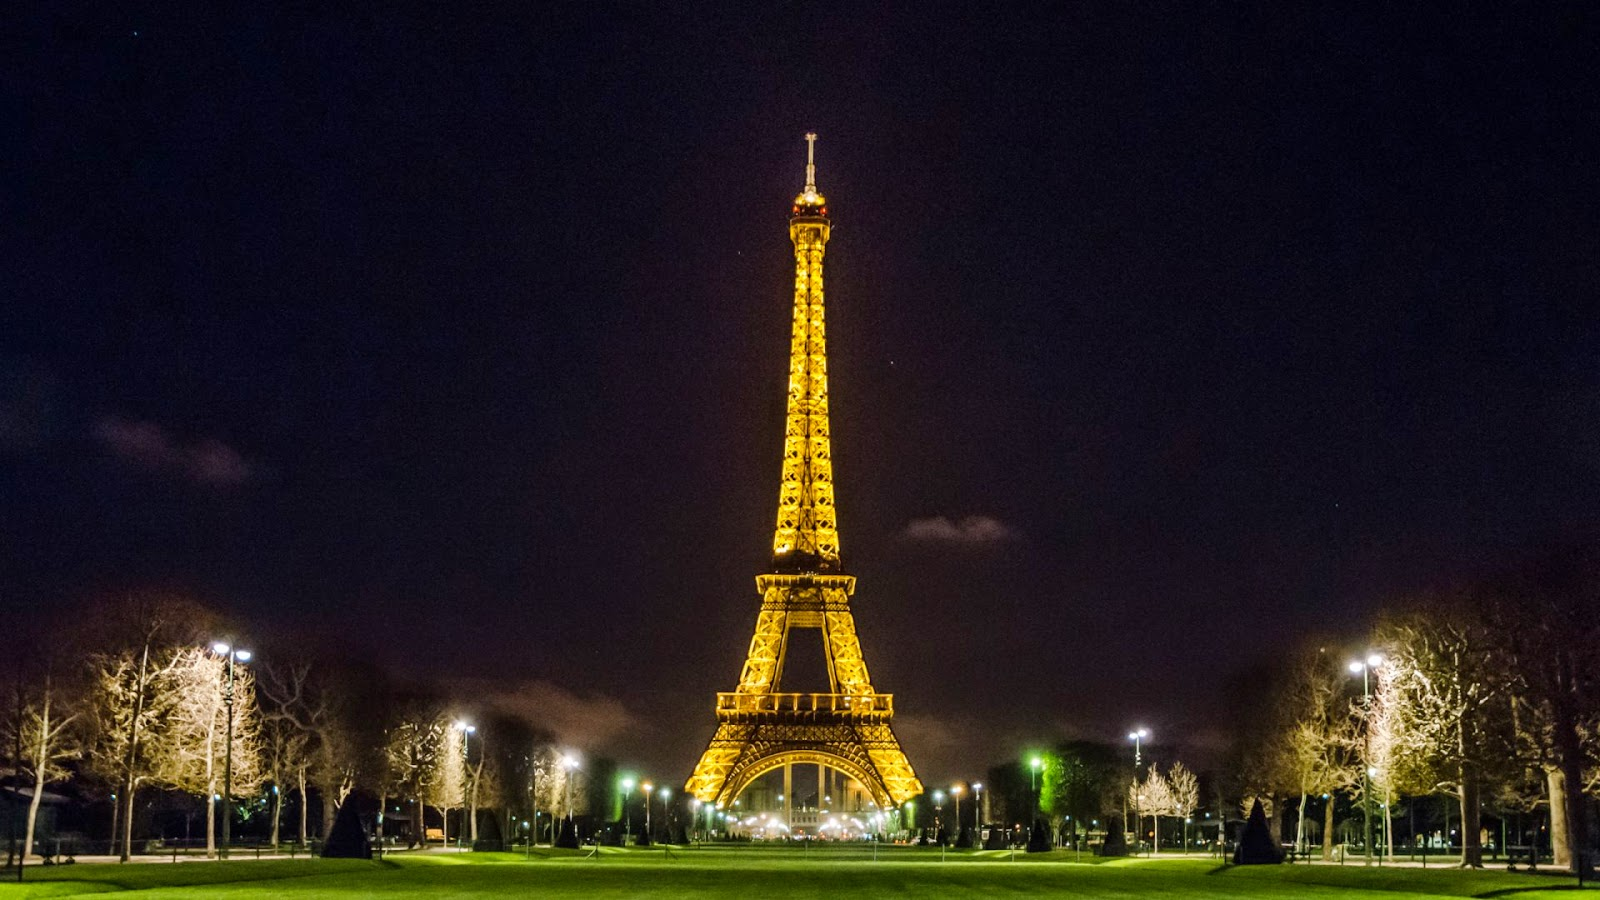 eiffel-tower-night-wallpapers-1-1